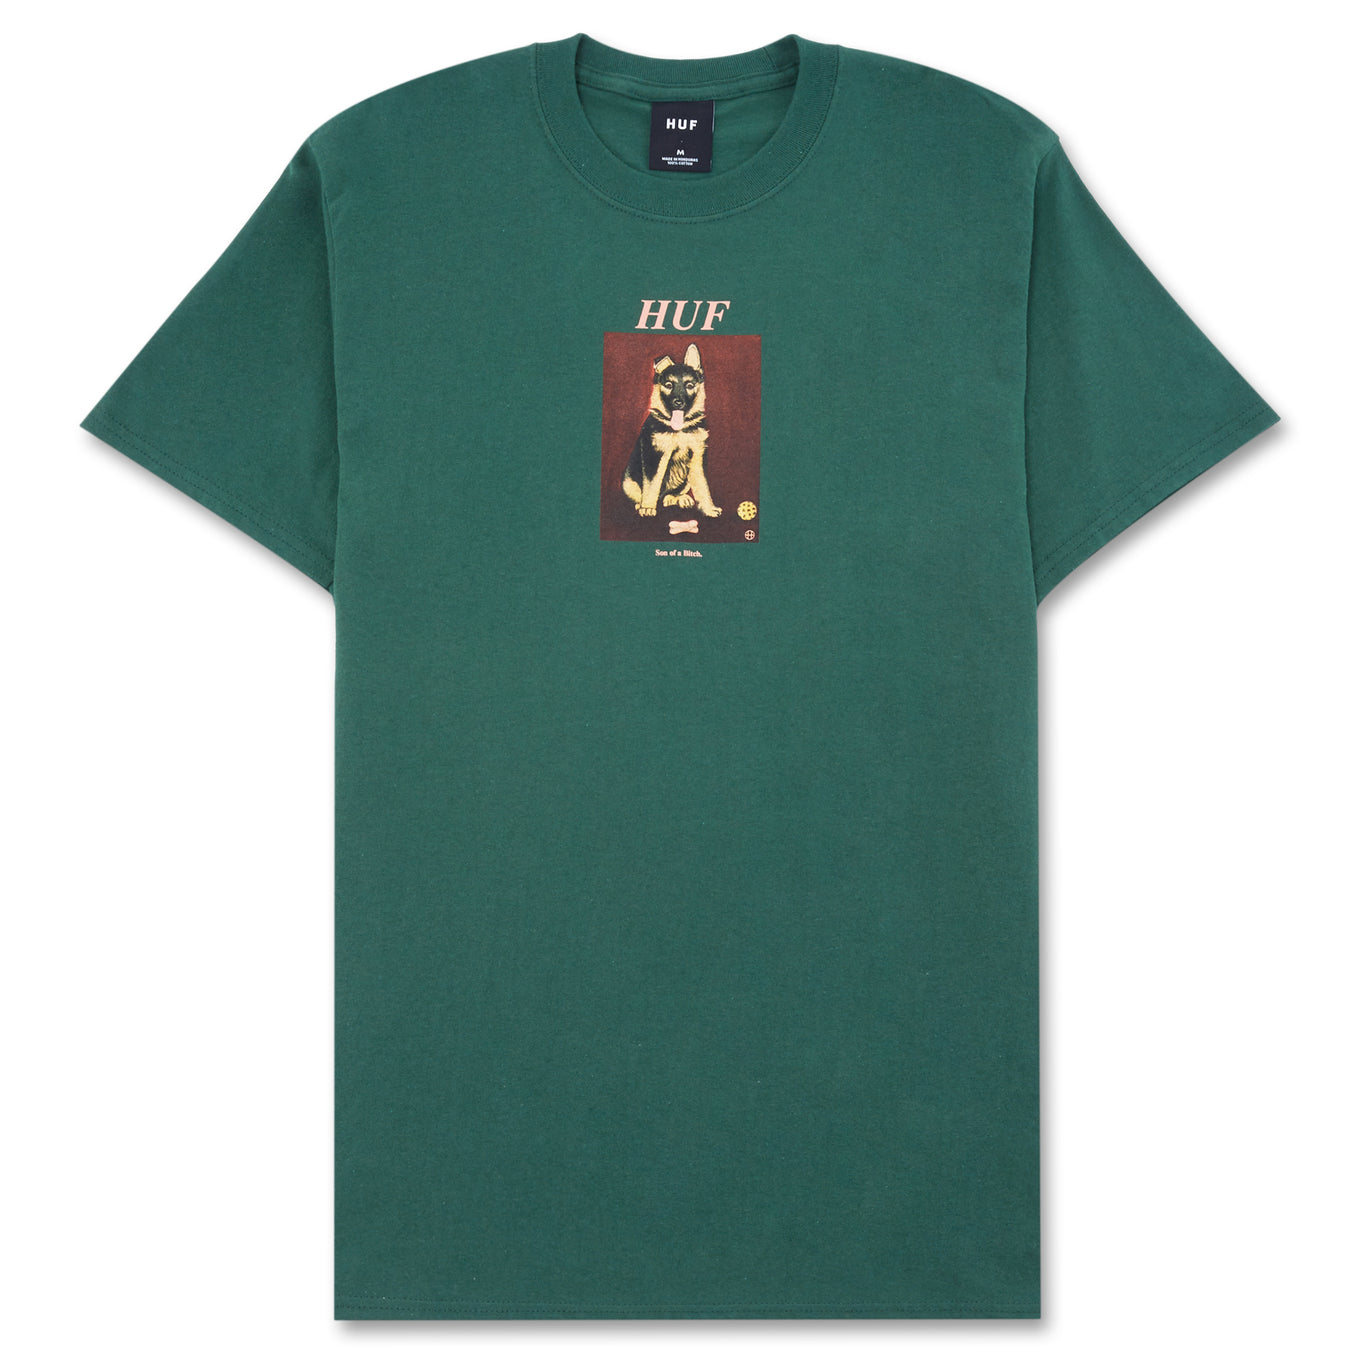 HUF Good Boy S/S Tee